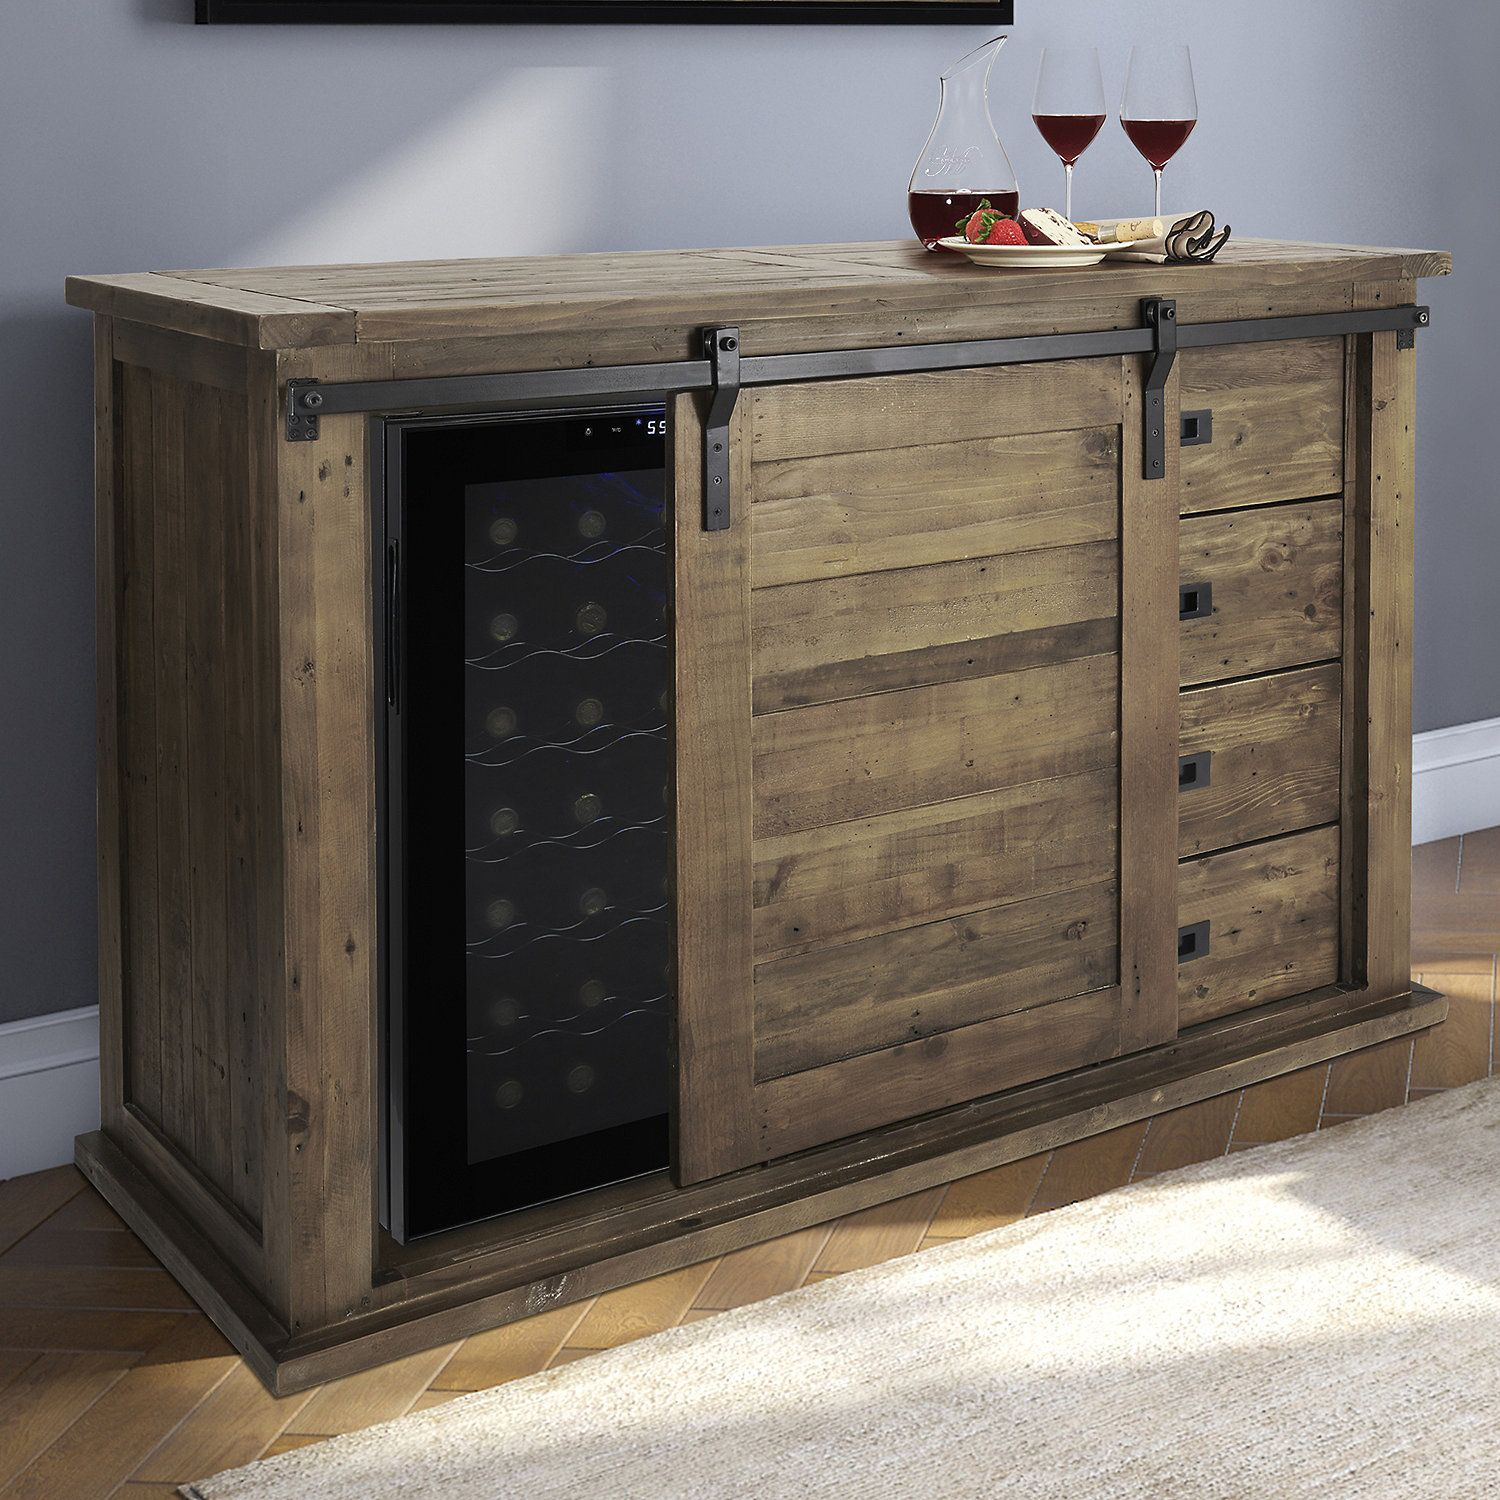 Awesome Mesa Sliding Barn Door Cabinet With Wine Refrigerator In Home Interior And Landscaping Spoatsignezvosmurscom